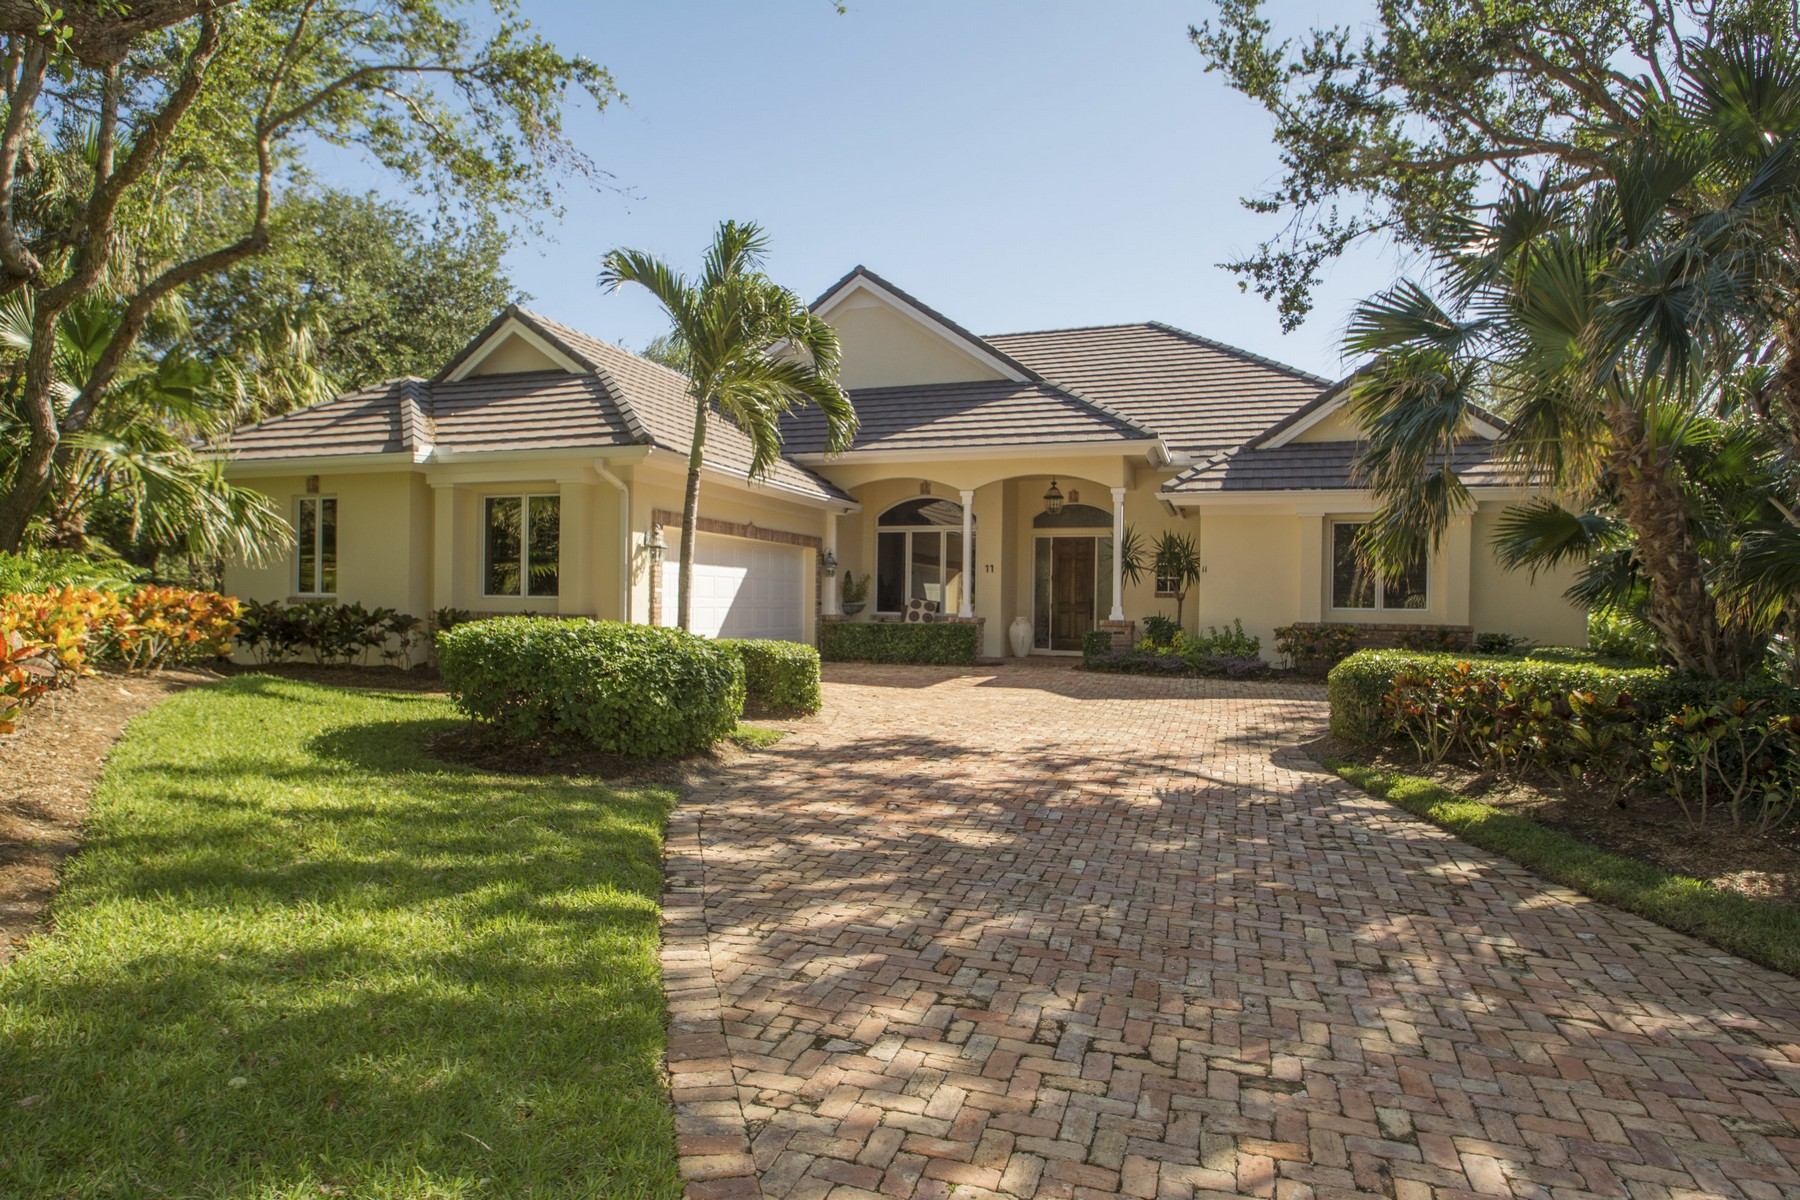 single family homes for Active at Magnificent Home with Exquisite Landscaping 11 S. White Jewel Court Indian River Shores, Florida 32963 United States